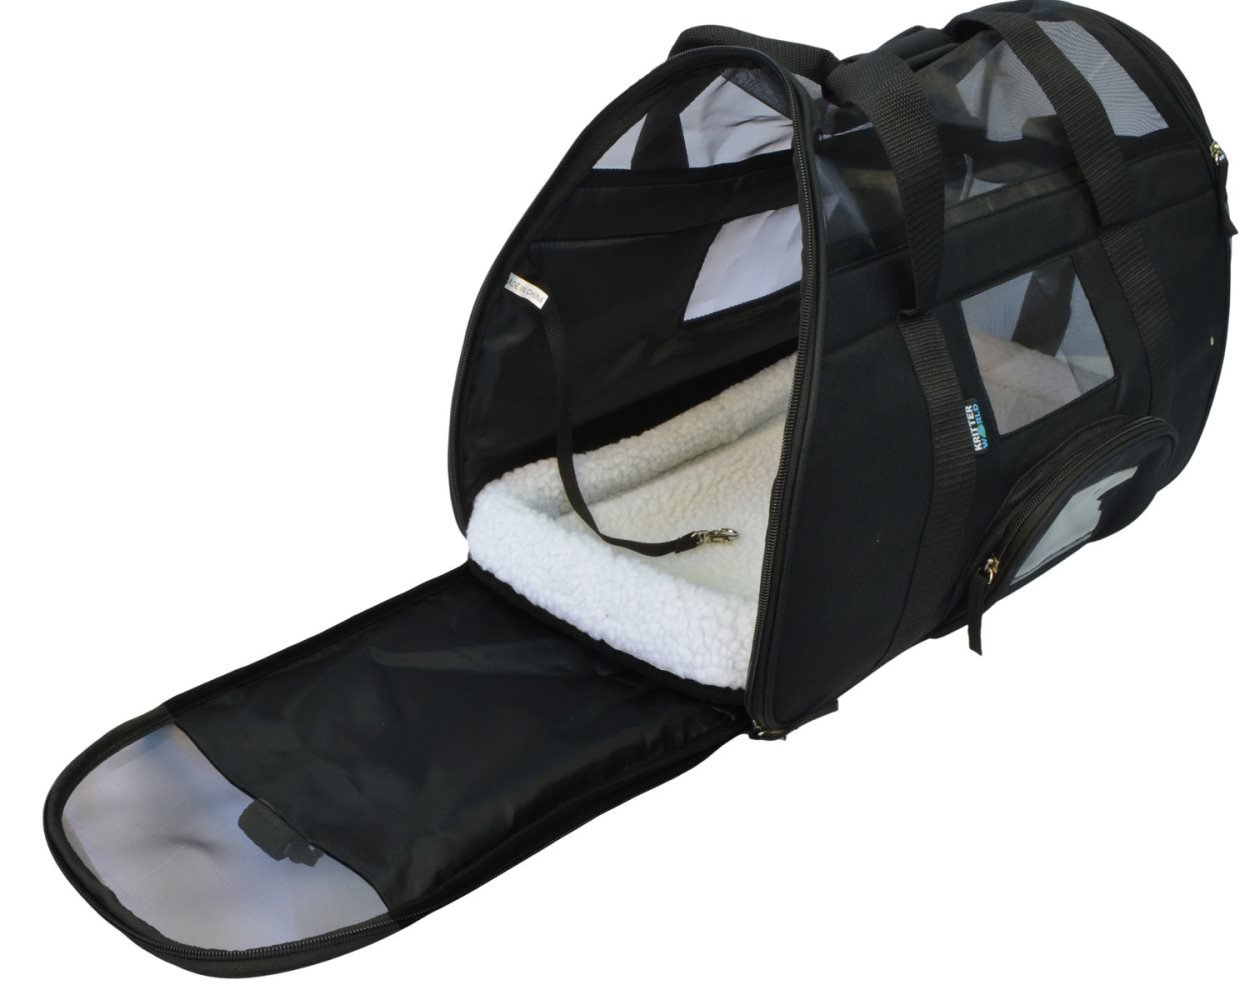 KritterWorld Soft Sided Pet Travel Carrier for Small Dogs and Cats Puppy Small Animals Airline Approved | Removable Sherpa Lining Bed, Built-in Collar Buckle, Lost & Found Tag Included by Black by KritterWorld (Image #4)